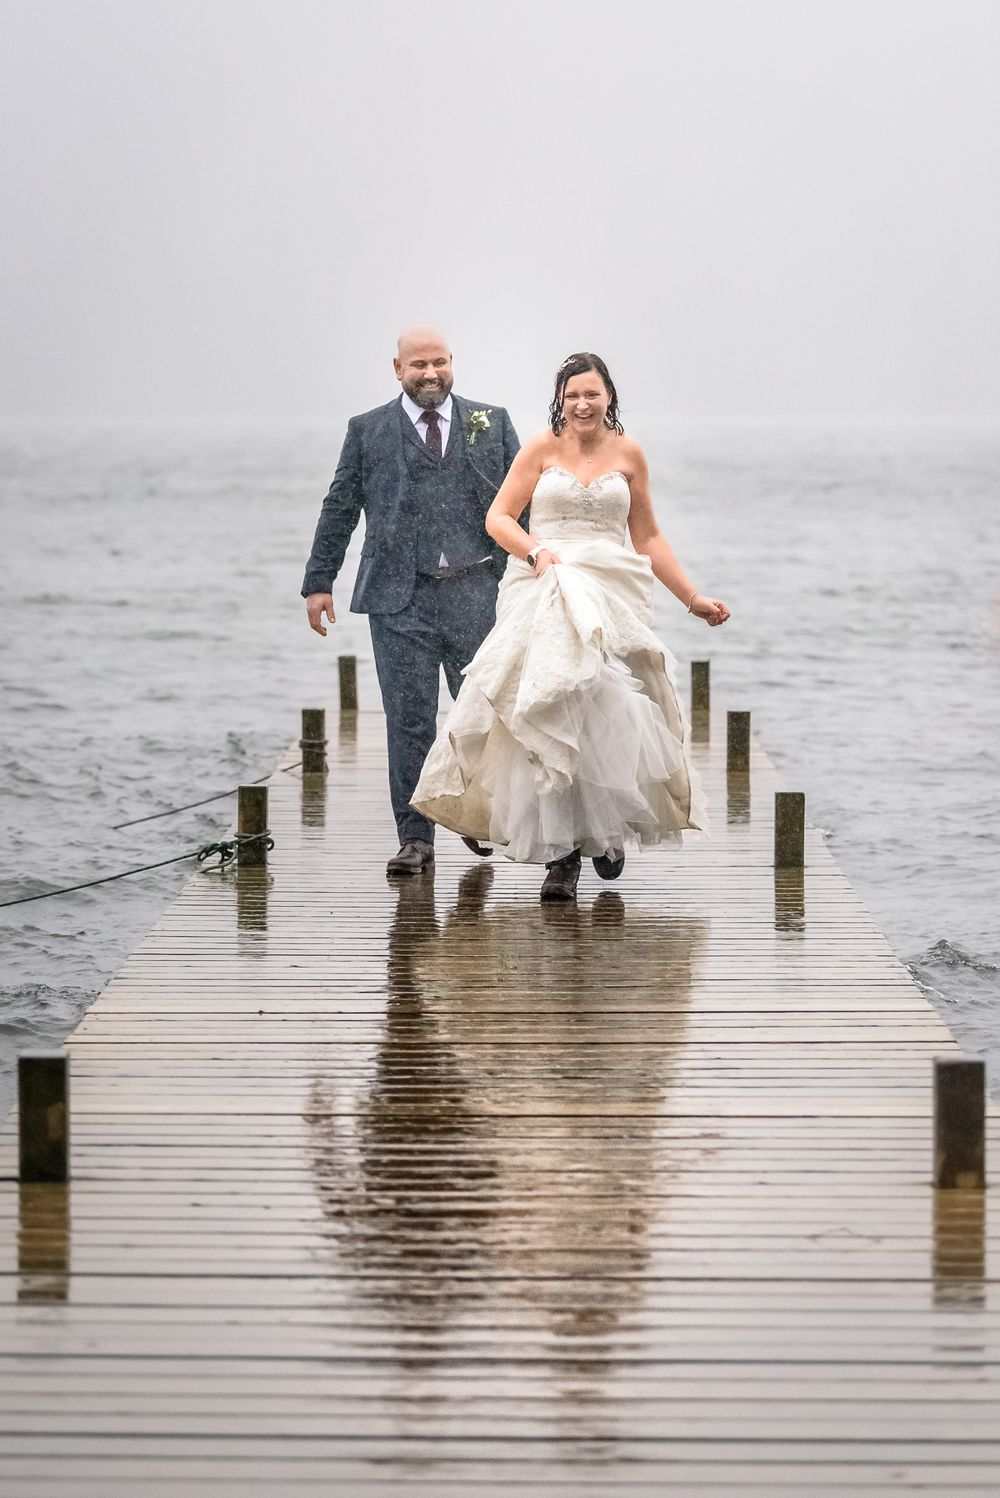 Bride and groom walk along jetty in rain at Windermere